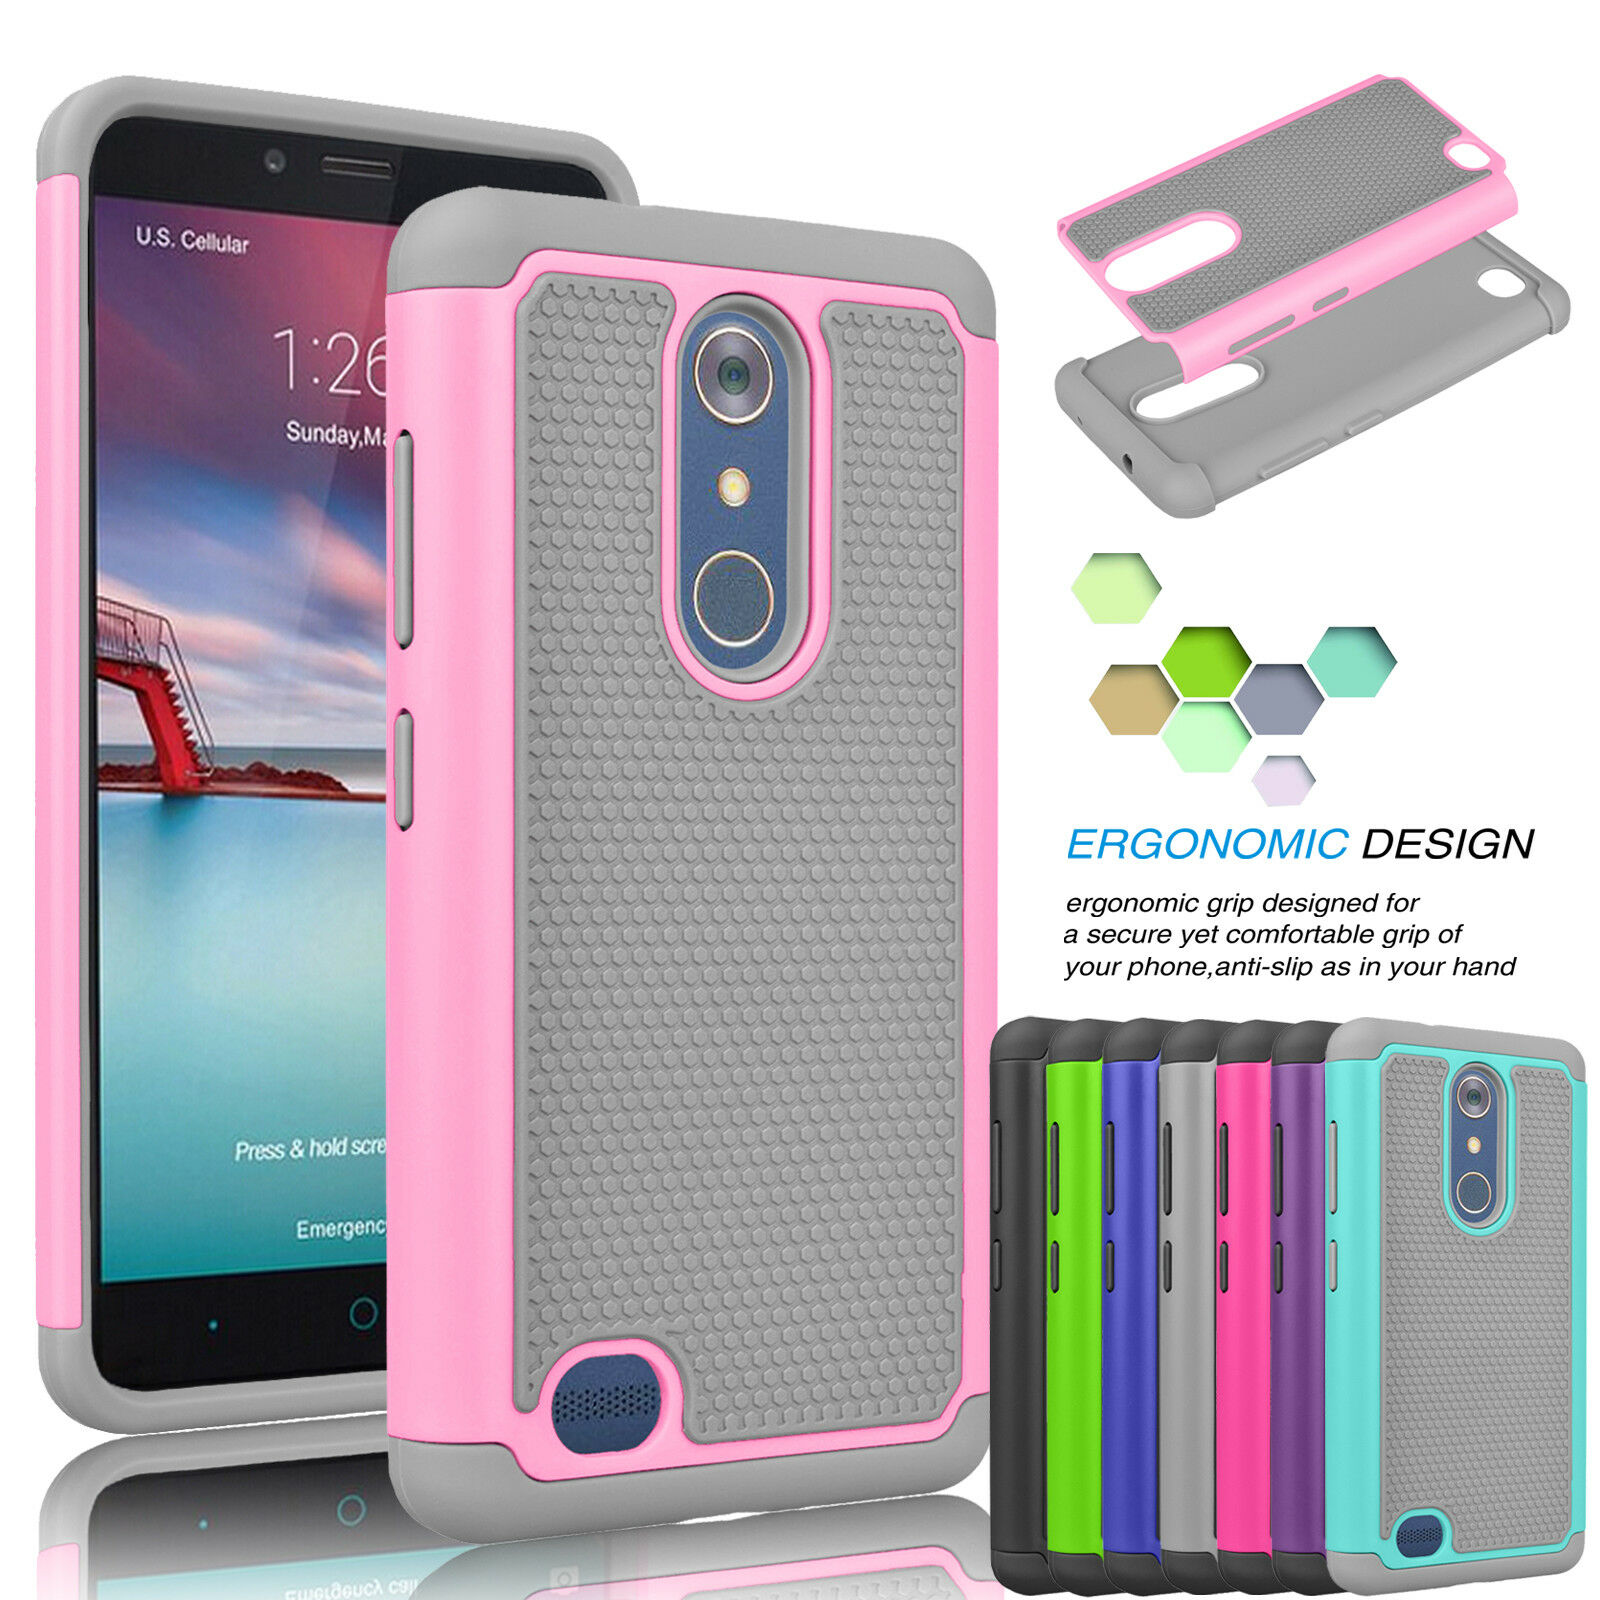 Купить Unbranded/Generic 2 in 1 Combo, Best Protection - For ZTE Zmax Pro / Z981 Shockproof Armor Hybrid Rubber Impact Hard Case Cover